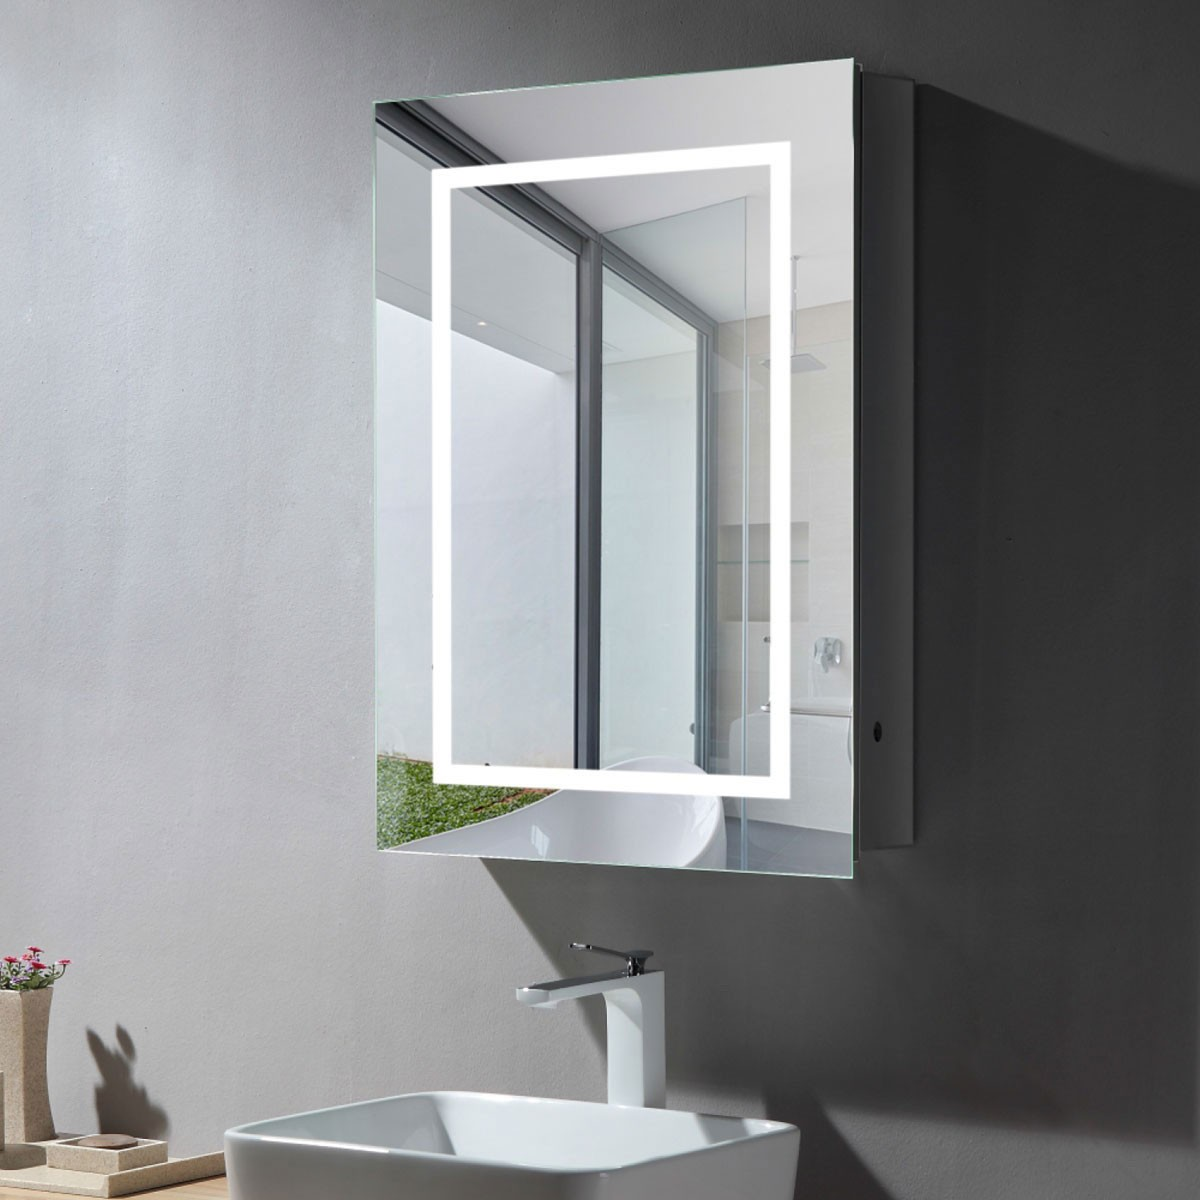 24 x 32 In LED Mirror Cabinet with Infrared Sensor (DK-NS169)